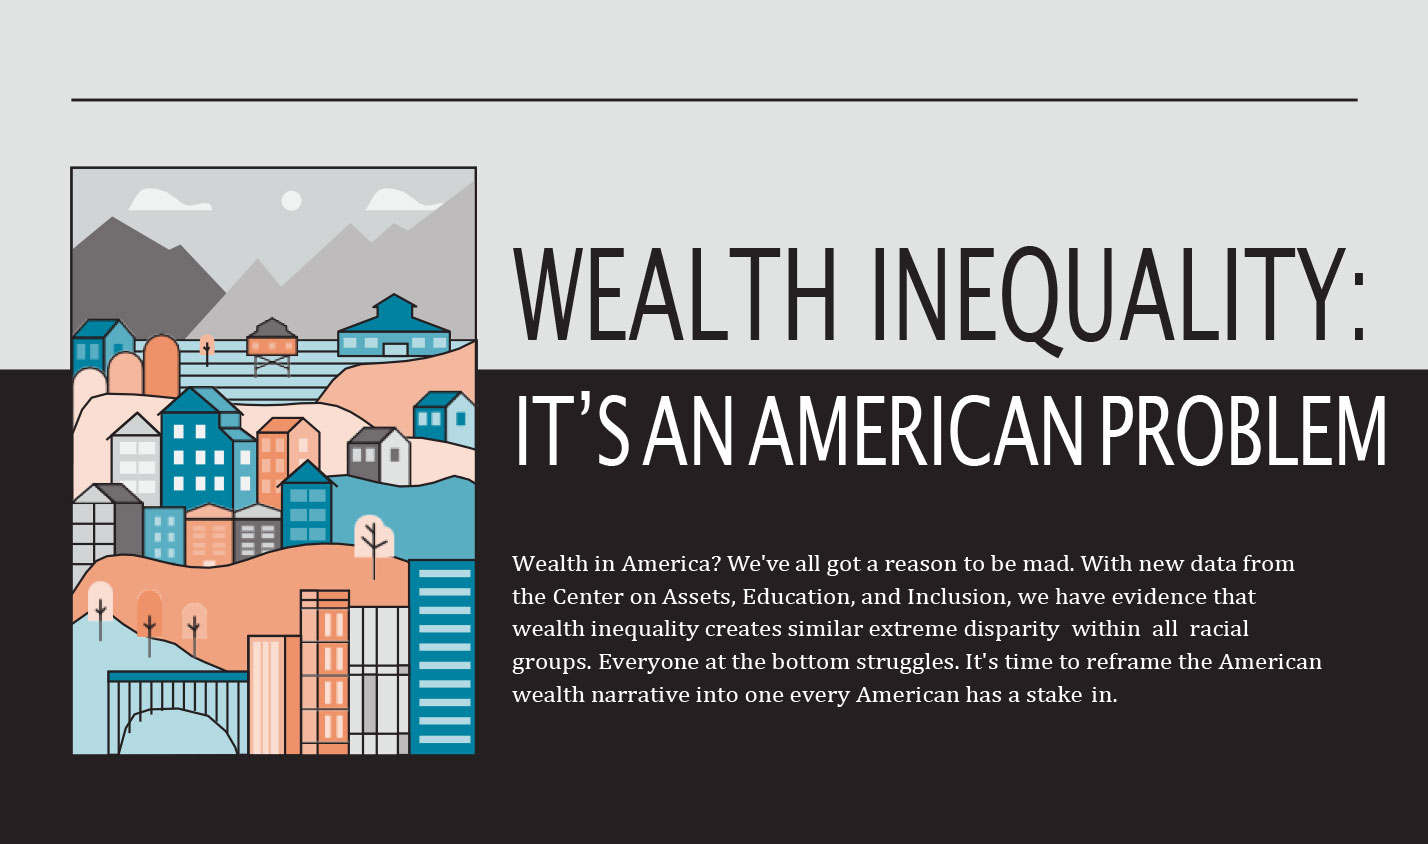 Wealth Inequality: It's an American Problem